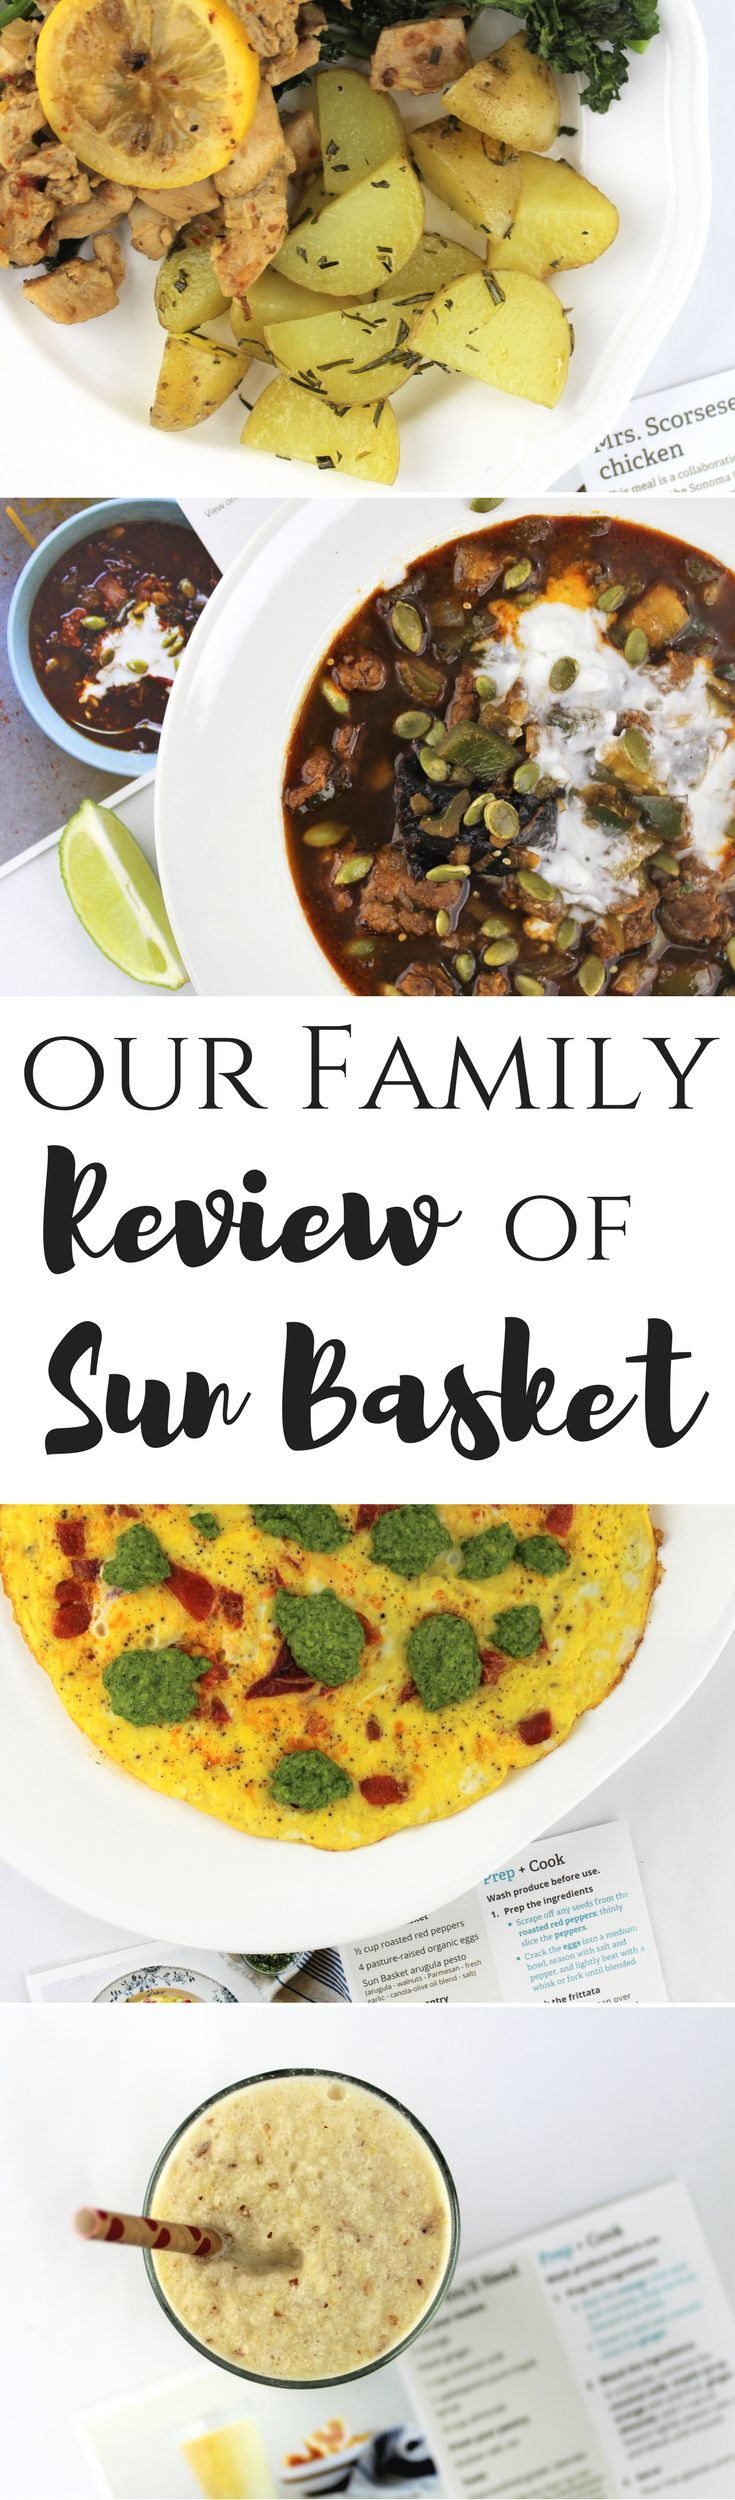 Our Family Review of Sun Basket   Meal delivery system   Organic, fresh, convenient   #ad  